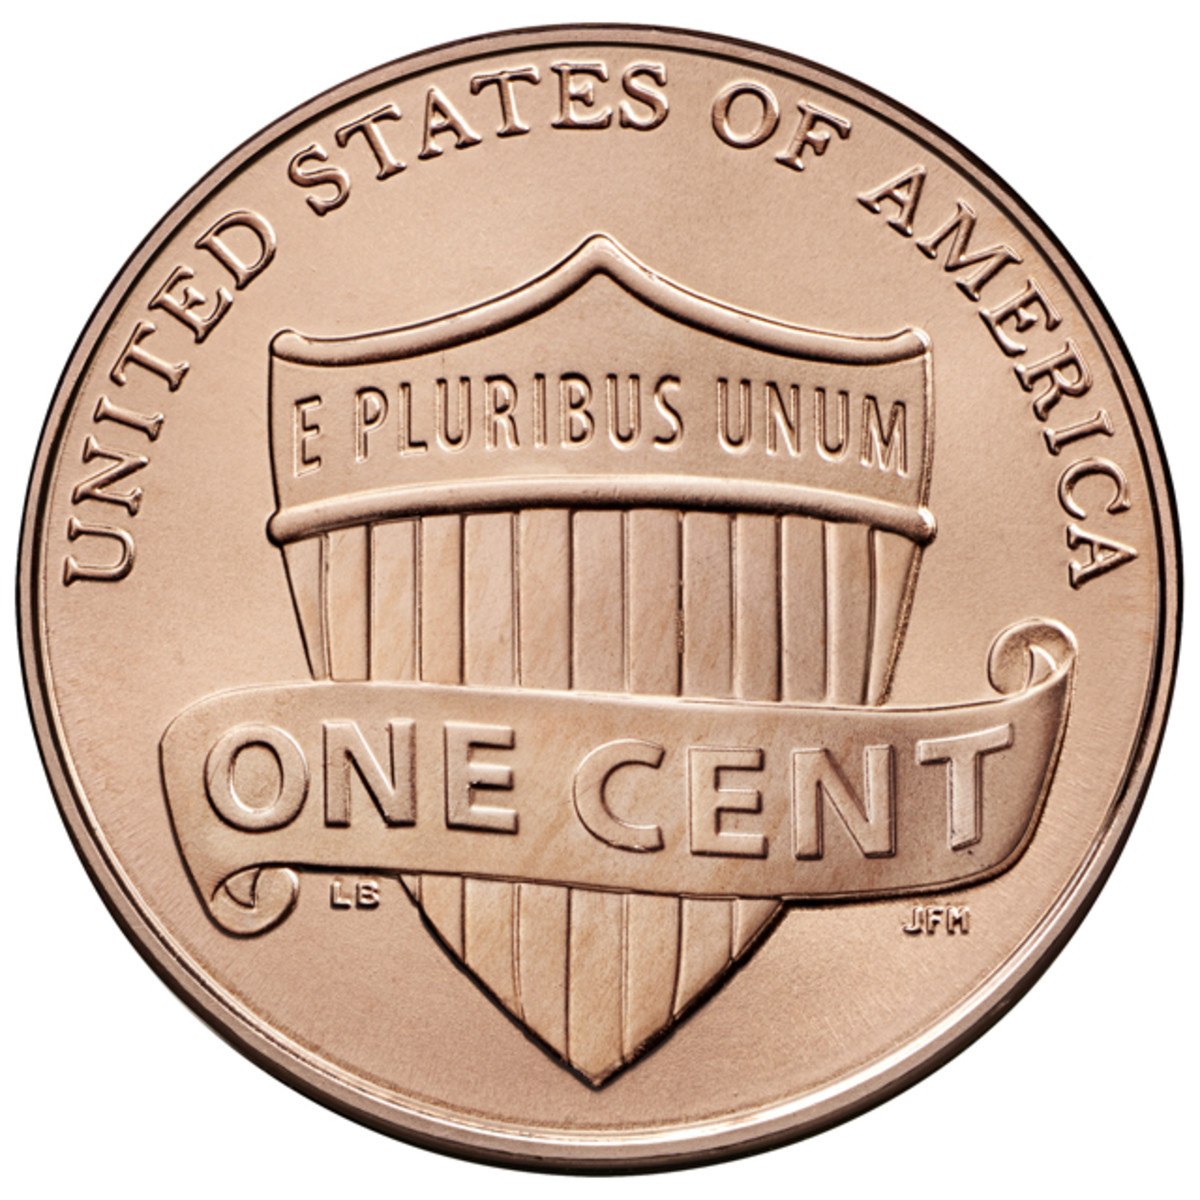 What does the future hold for the one cent coin?